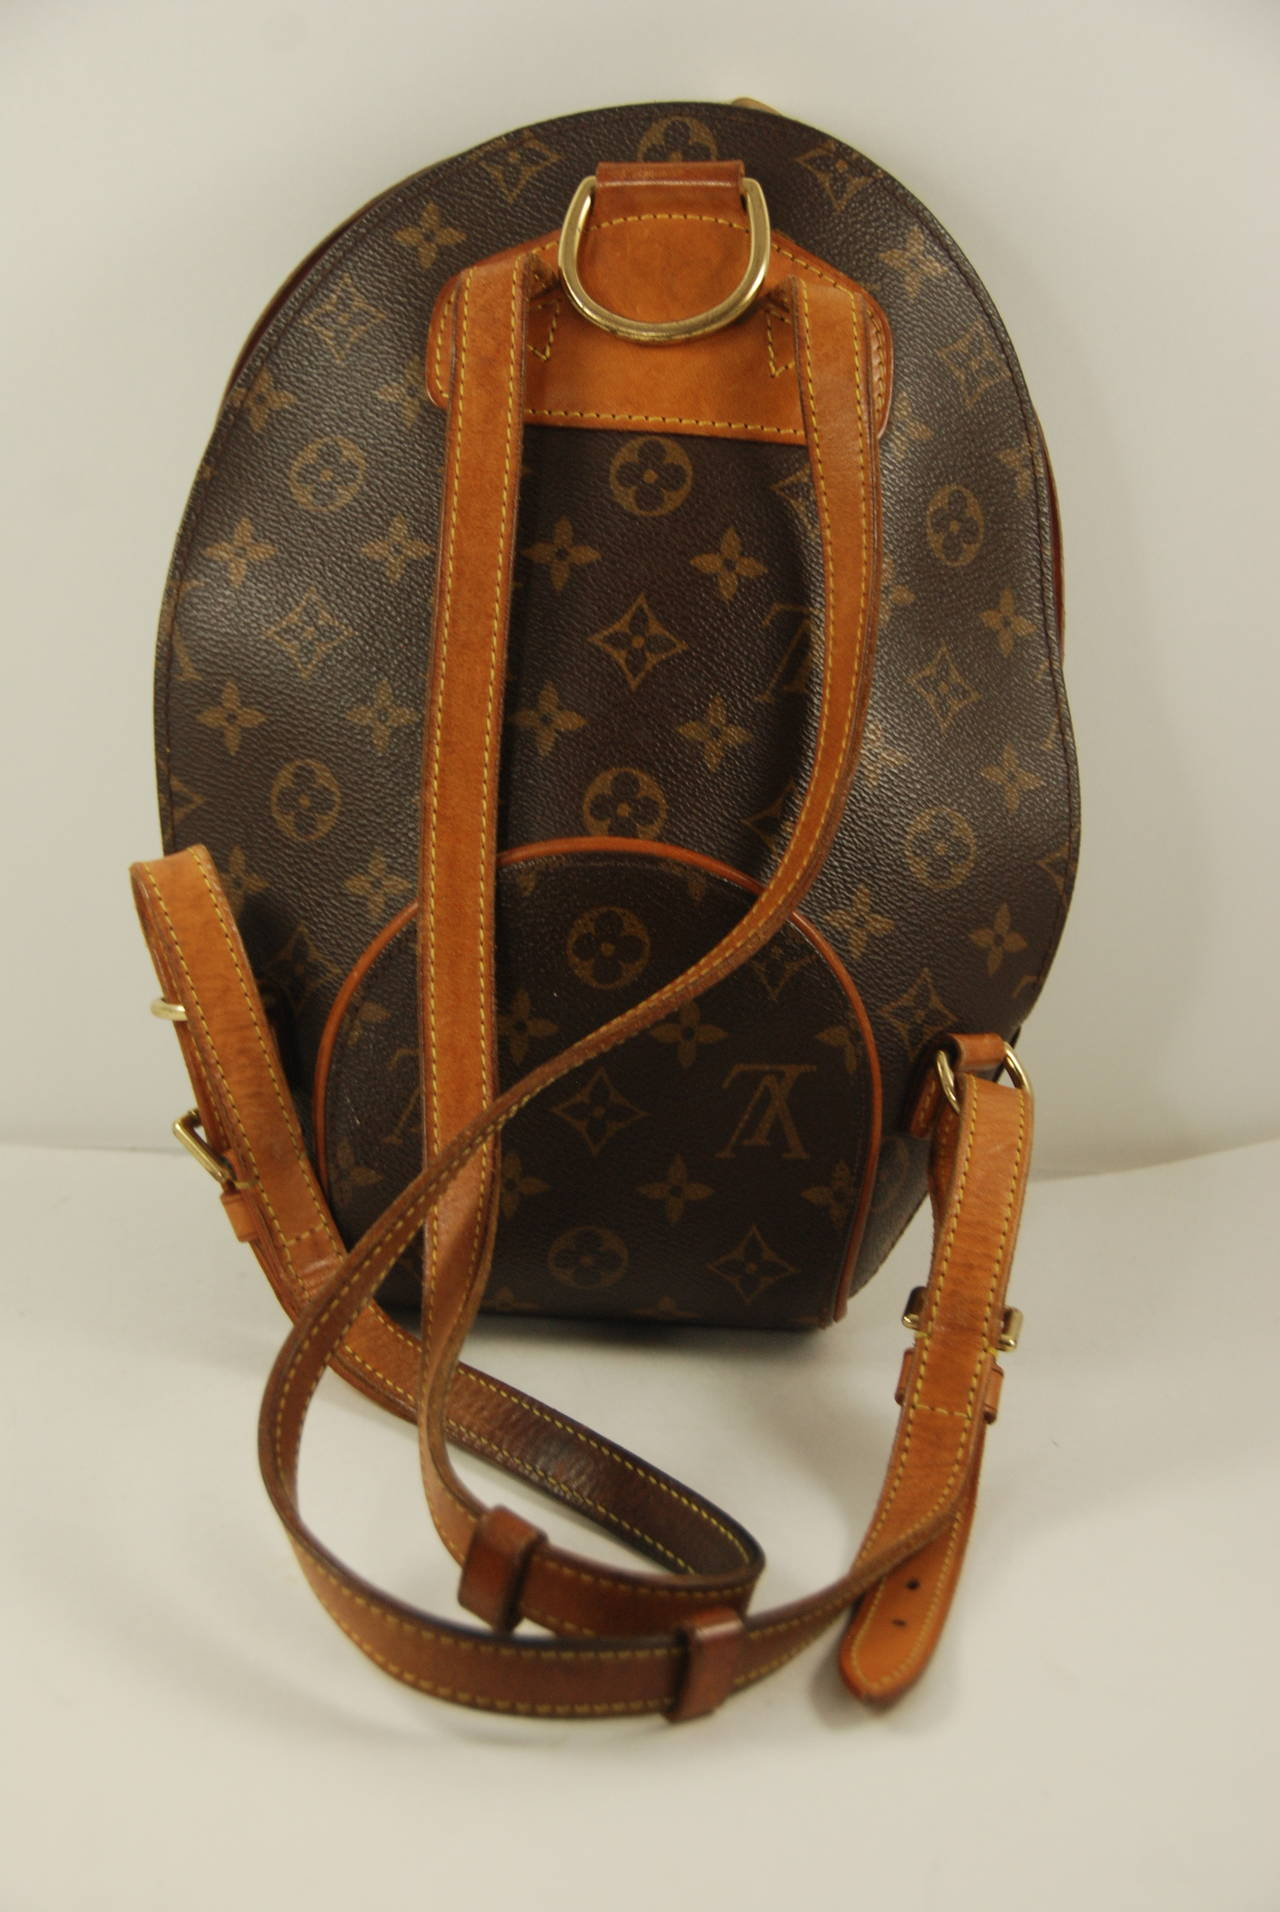 Louis Vuitton Ellipse Sac a Dos Monogram Canvas Backpack at 1stdibs